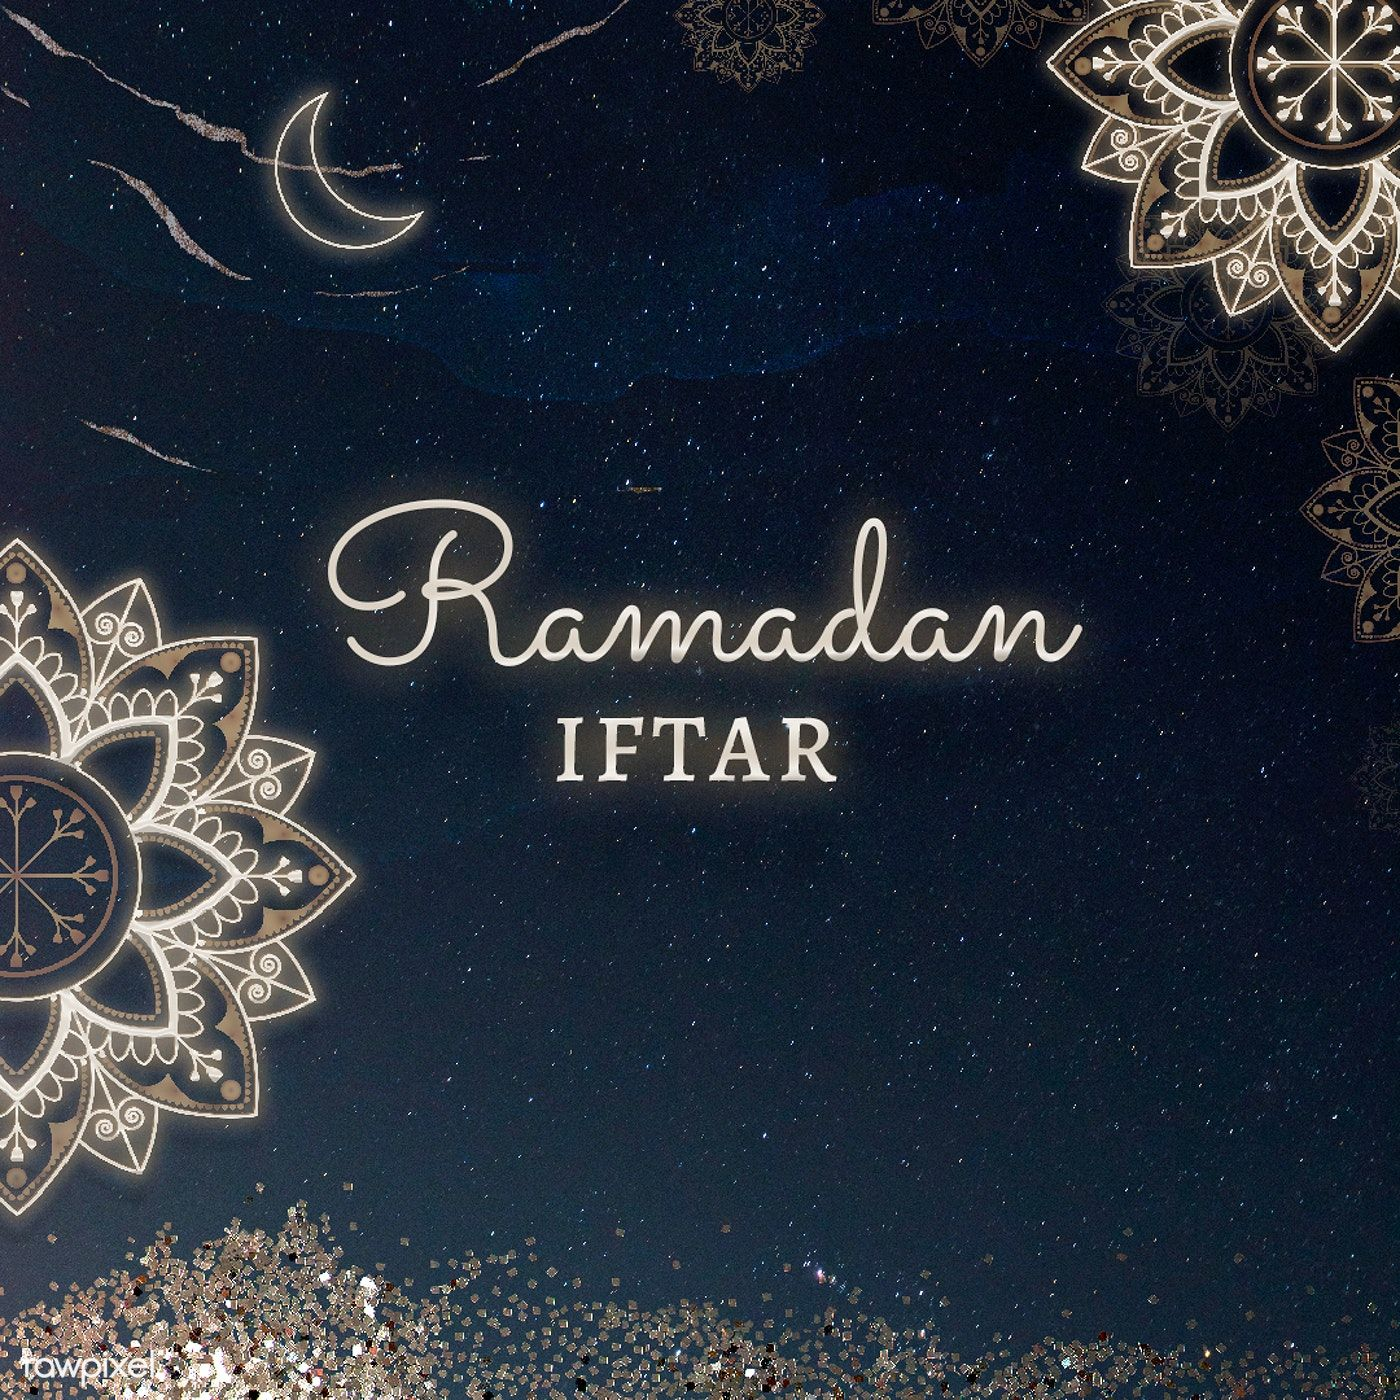 Blessing For Ramadan Card Template Free Image By Rawpixel Com Katie